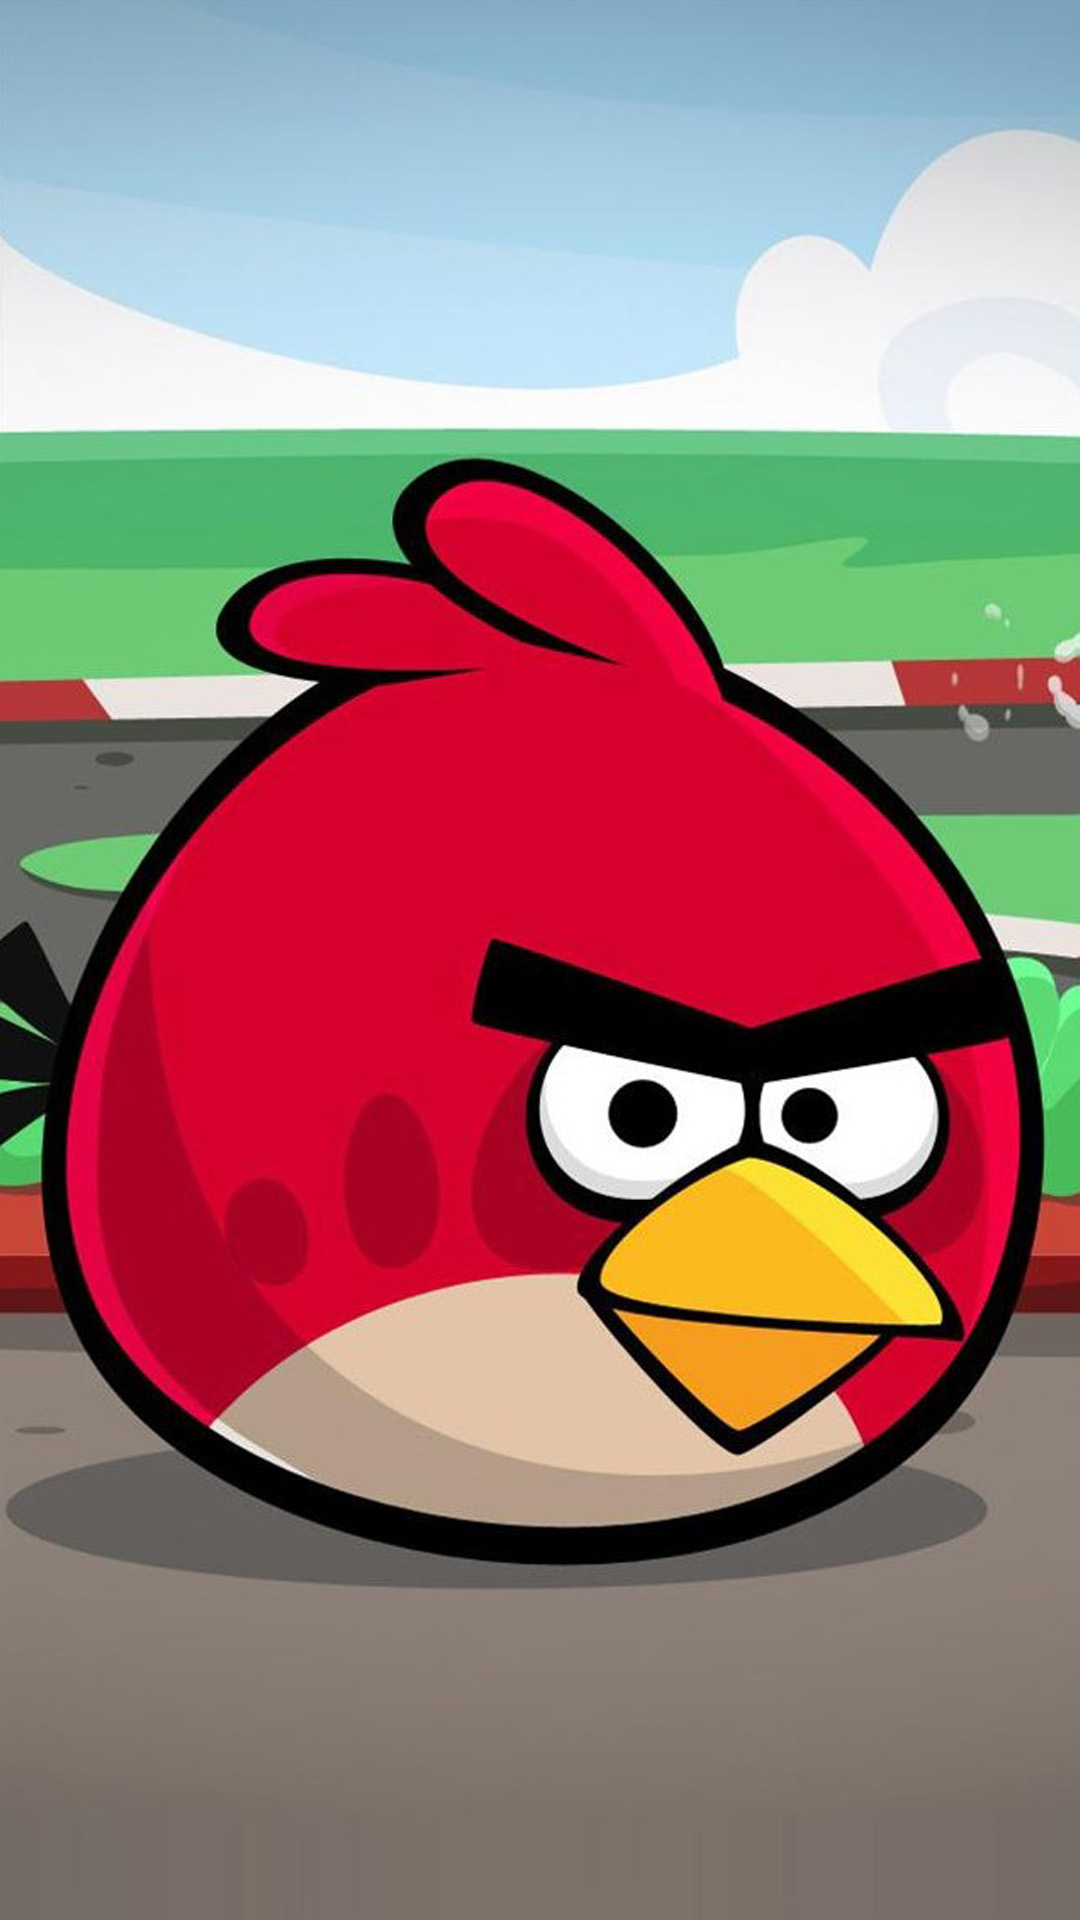 Angry Bird Red Art Android Wallpaper Android Hd Wallpapers